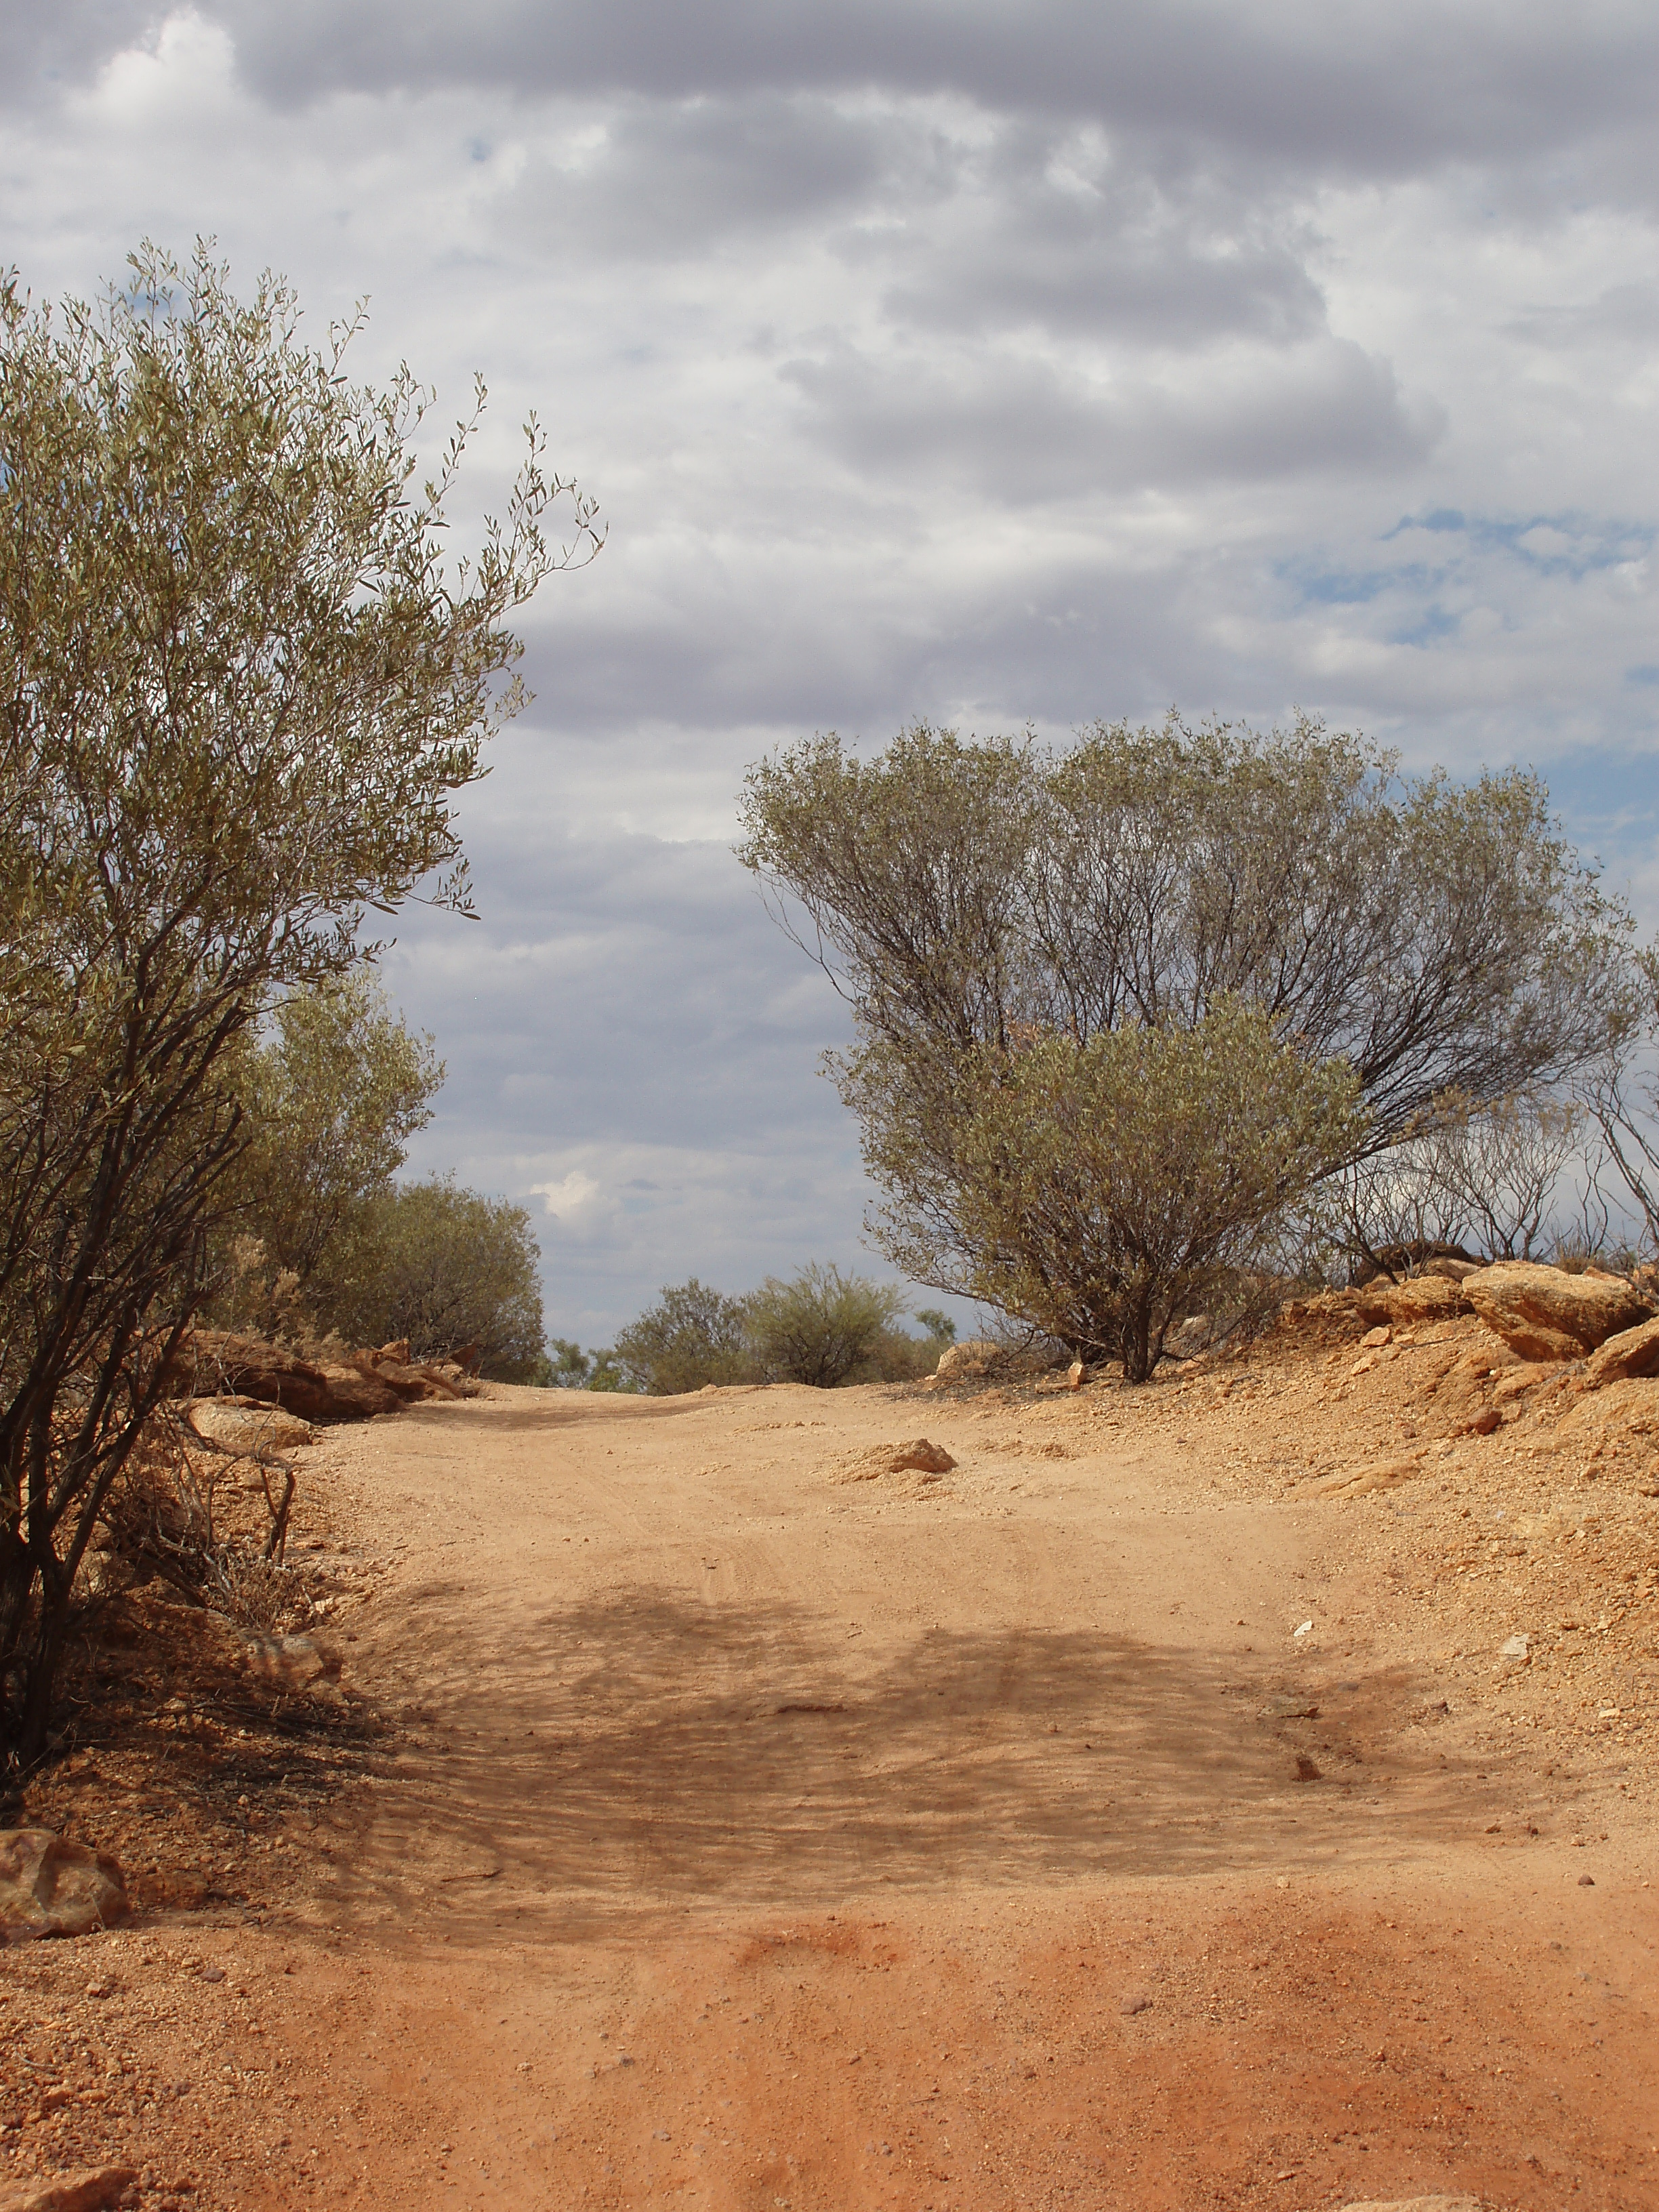 view along a dusty old dirt road in the outback